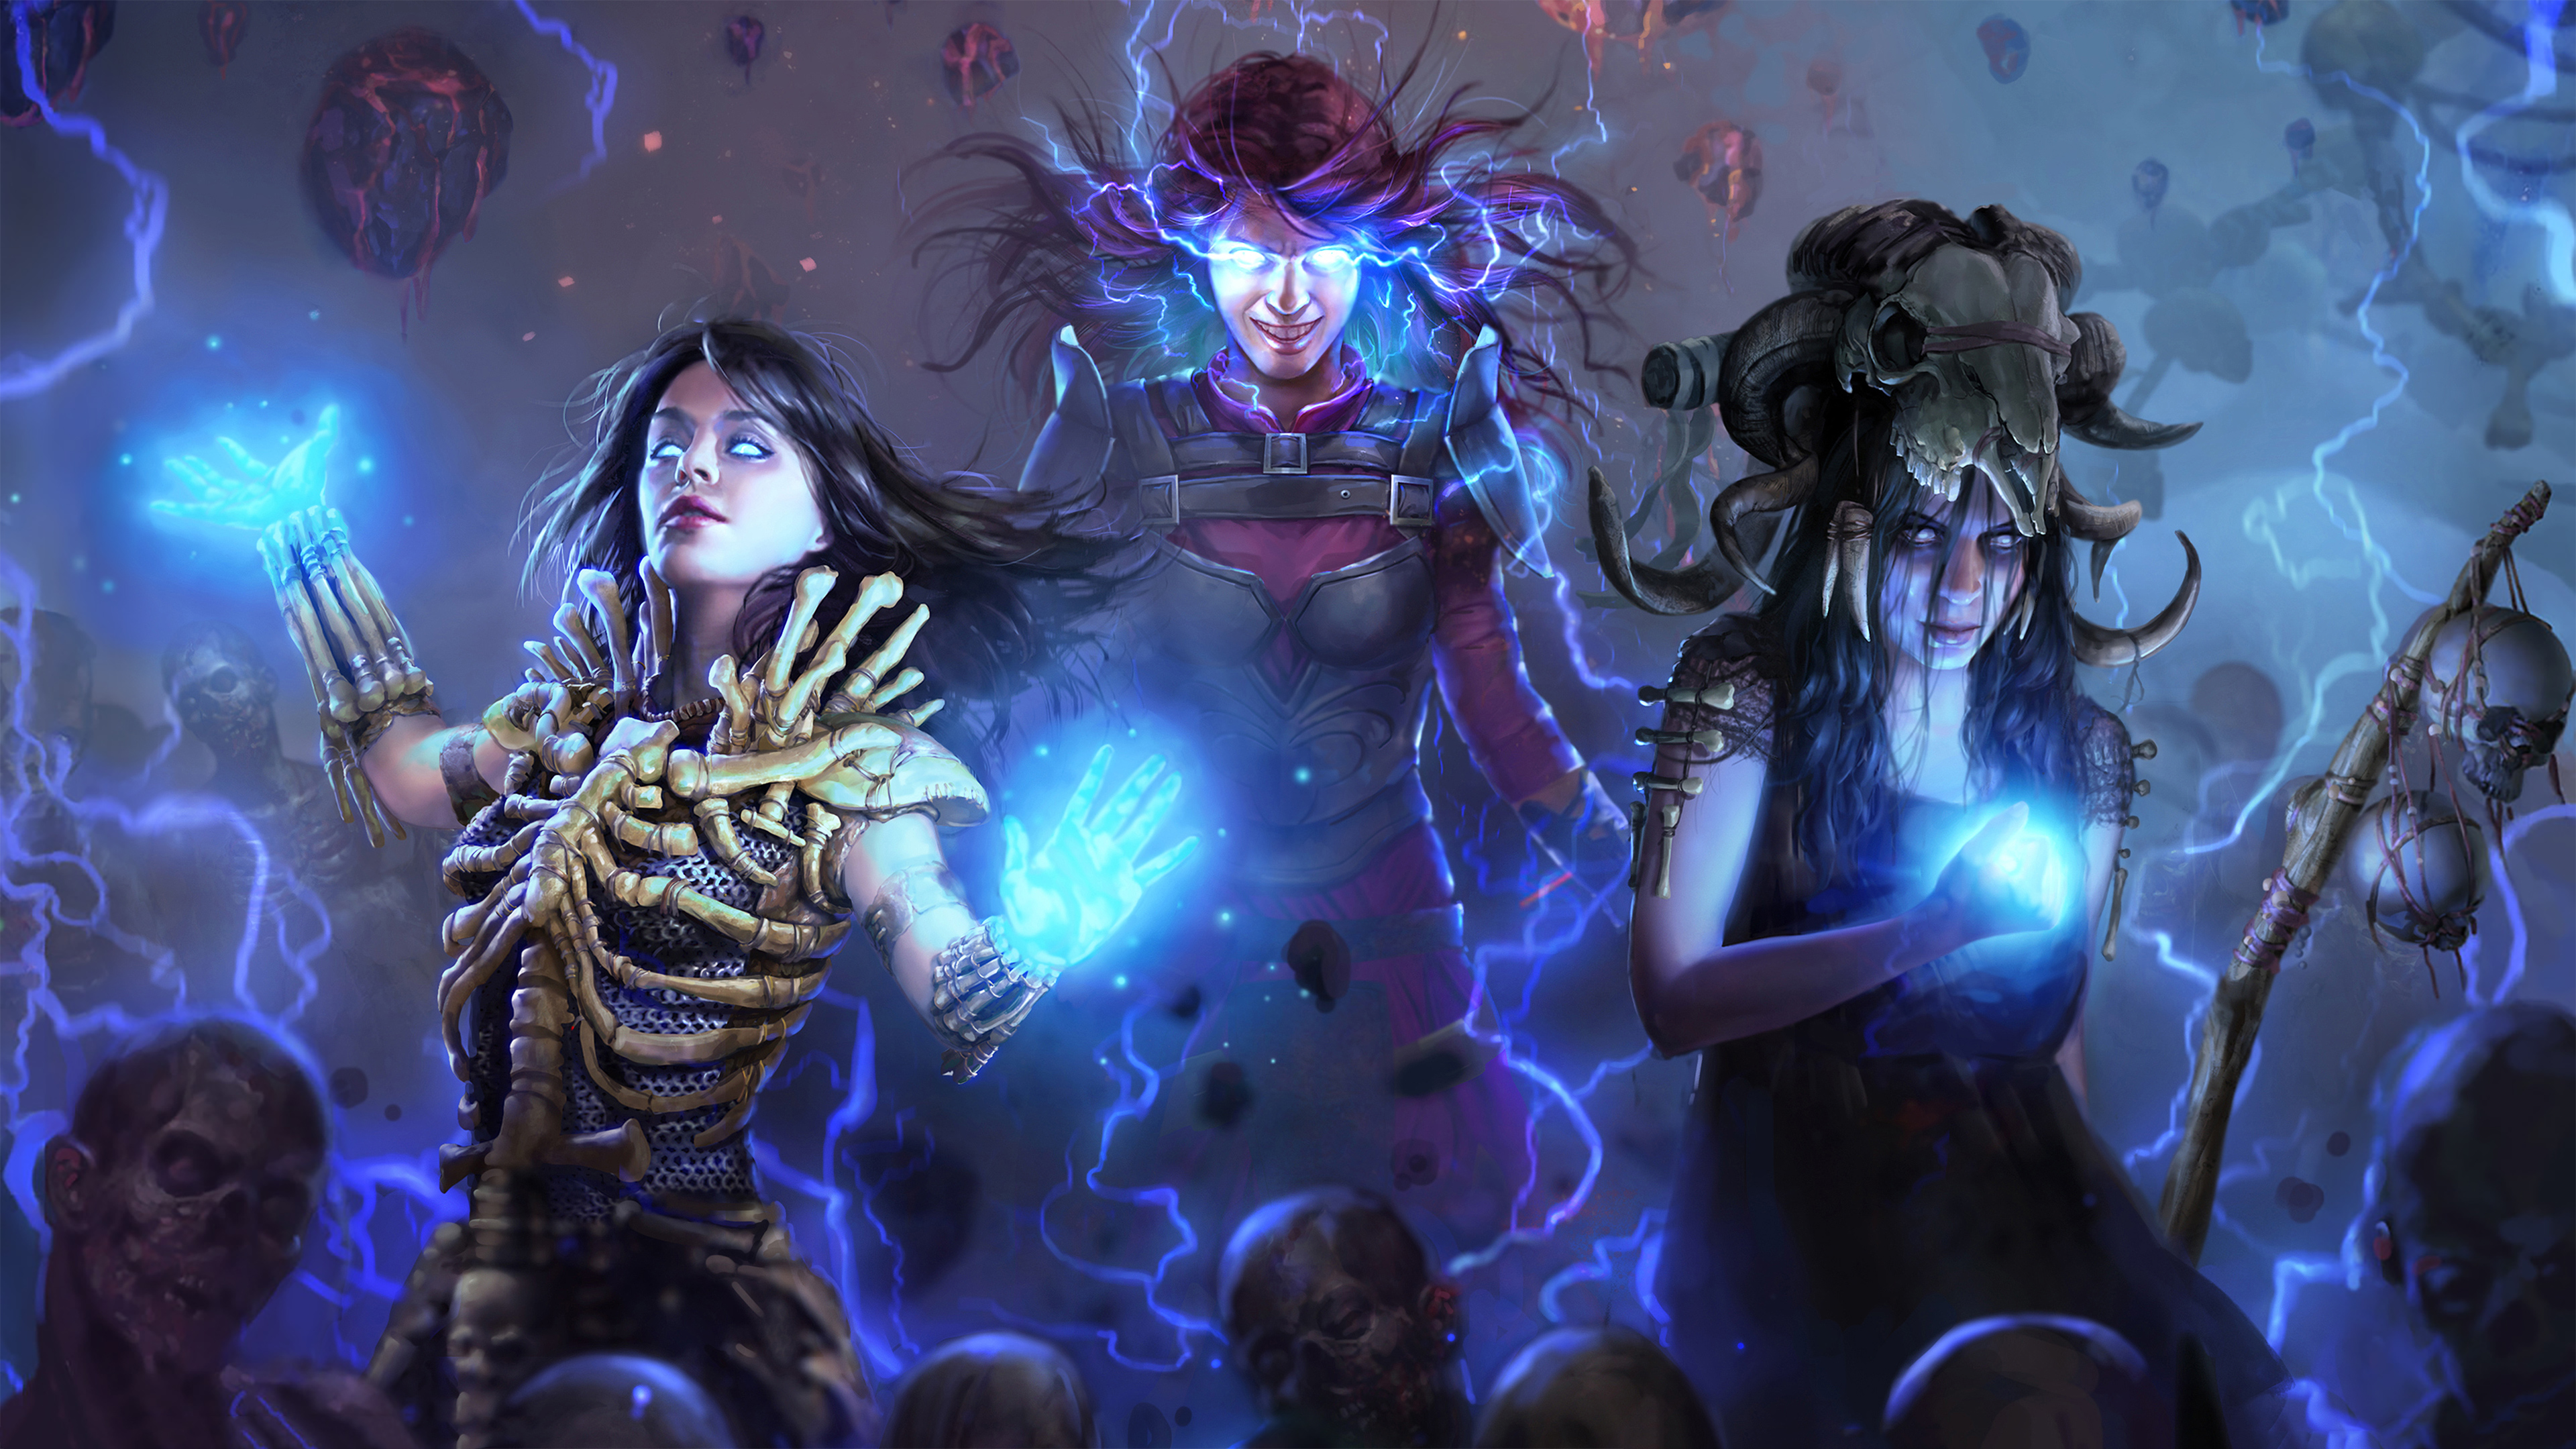 Path Of Exile Ascendancy 4k Hd Games 4k Wallpapers Images